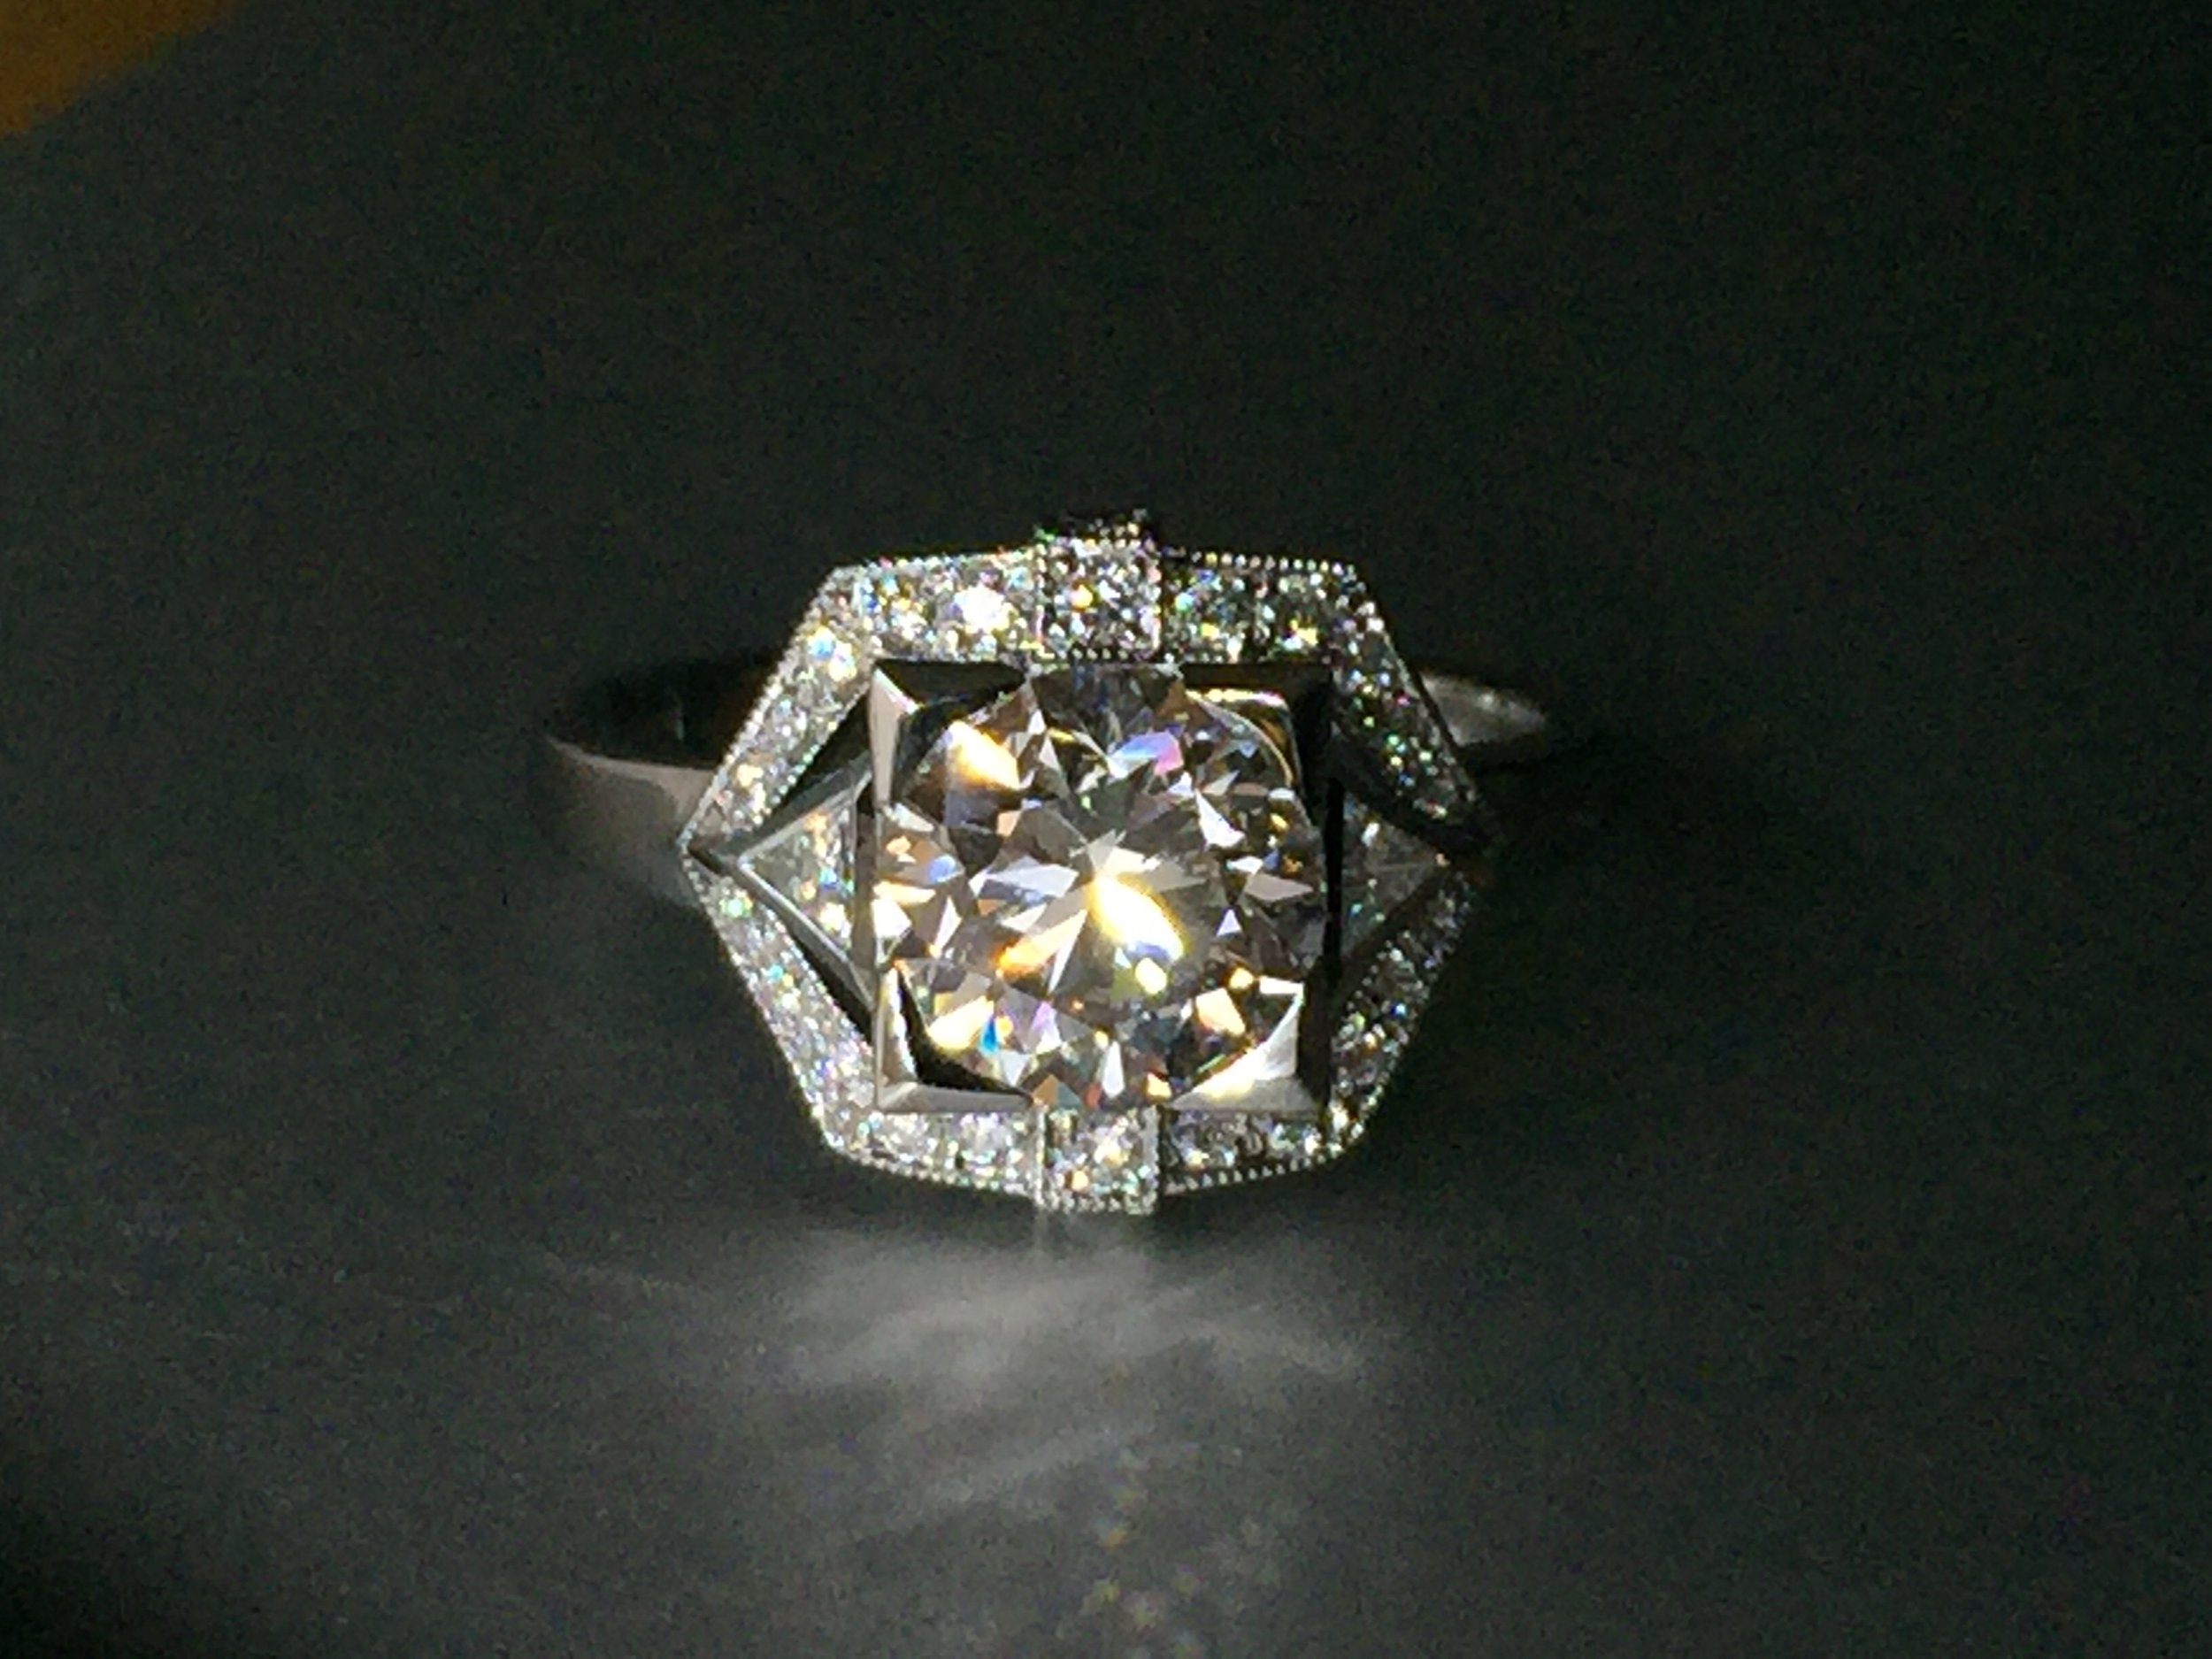 Copy of Art Deco style diamond cluster ring. Made in Chichester, England.